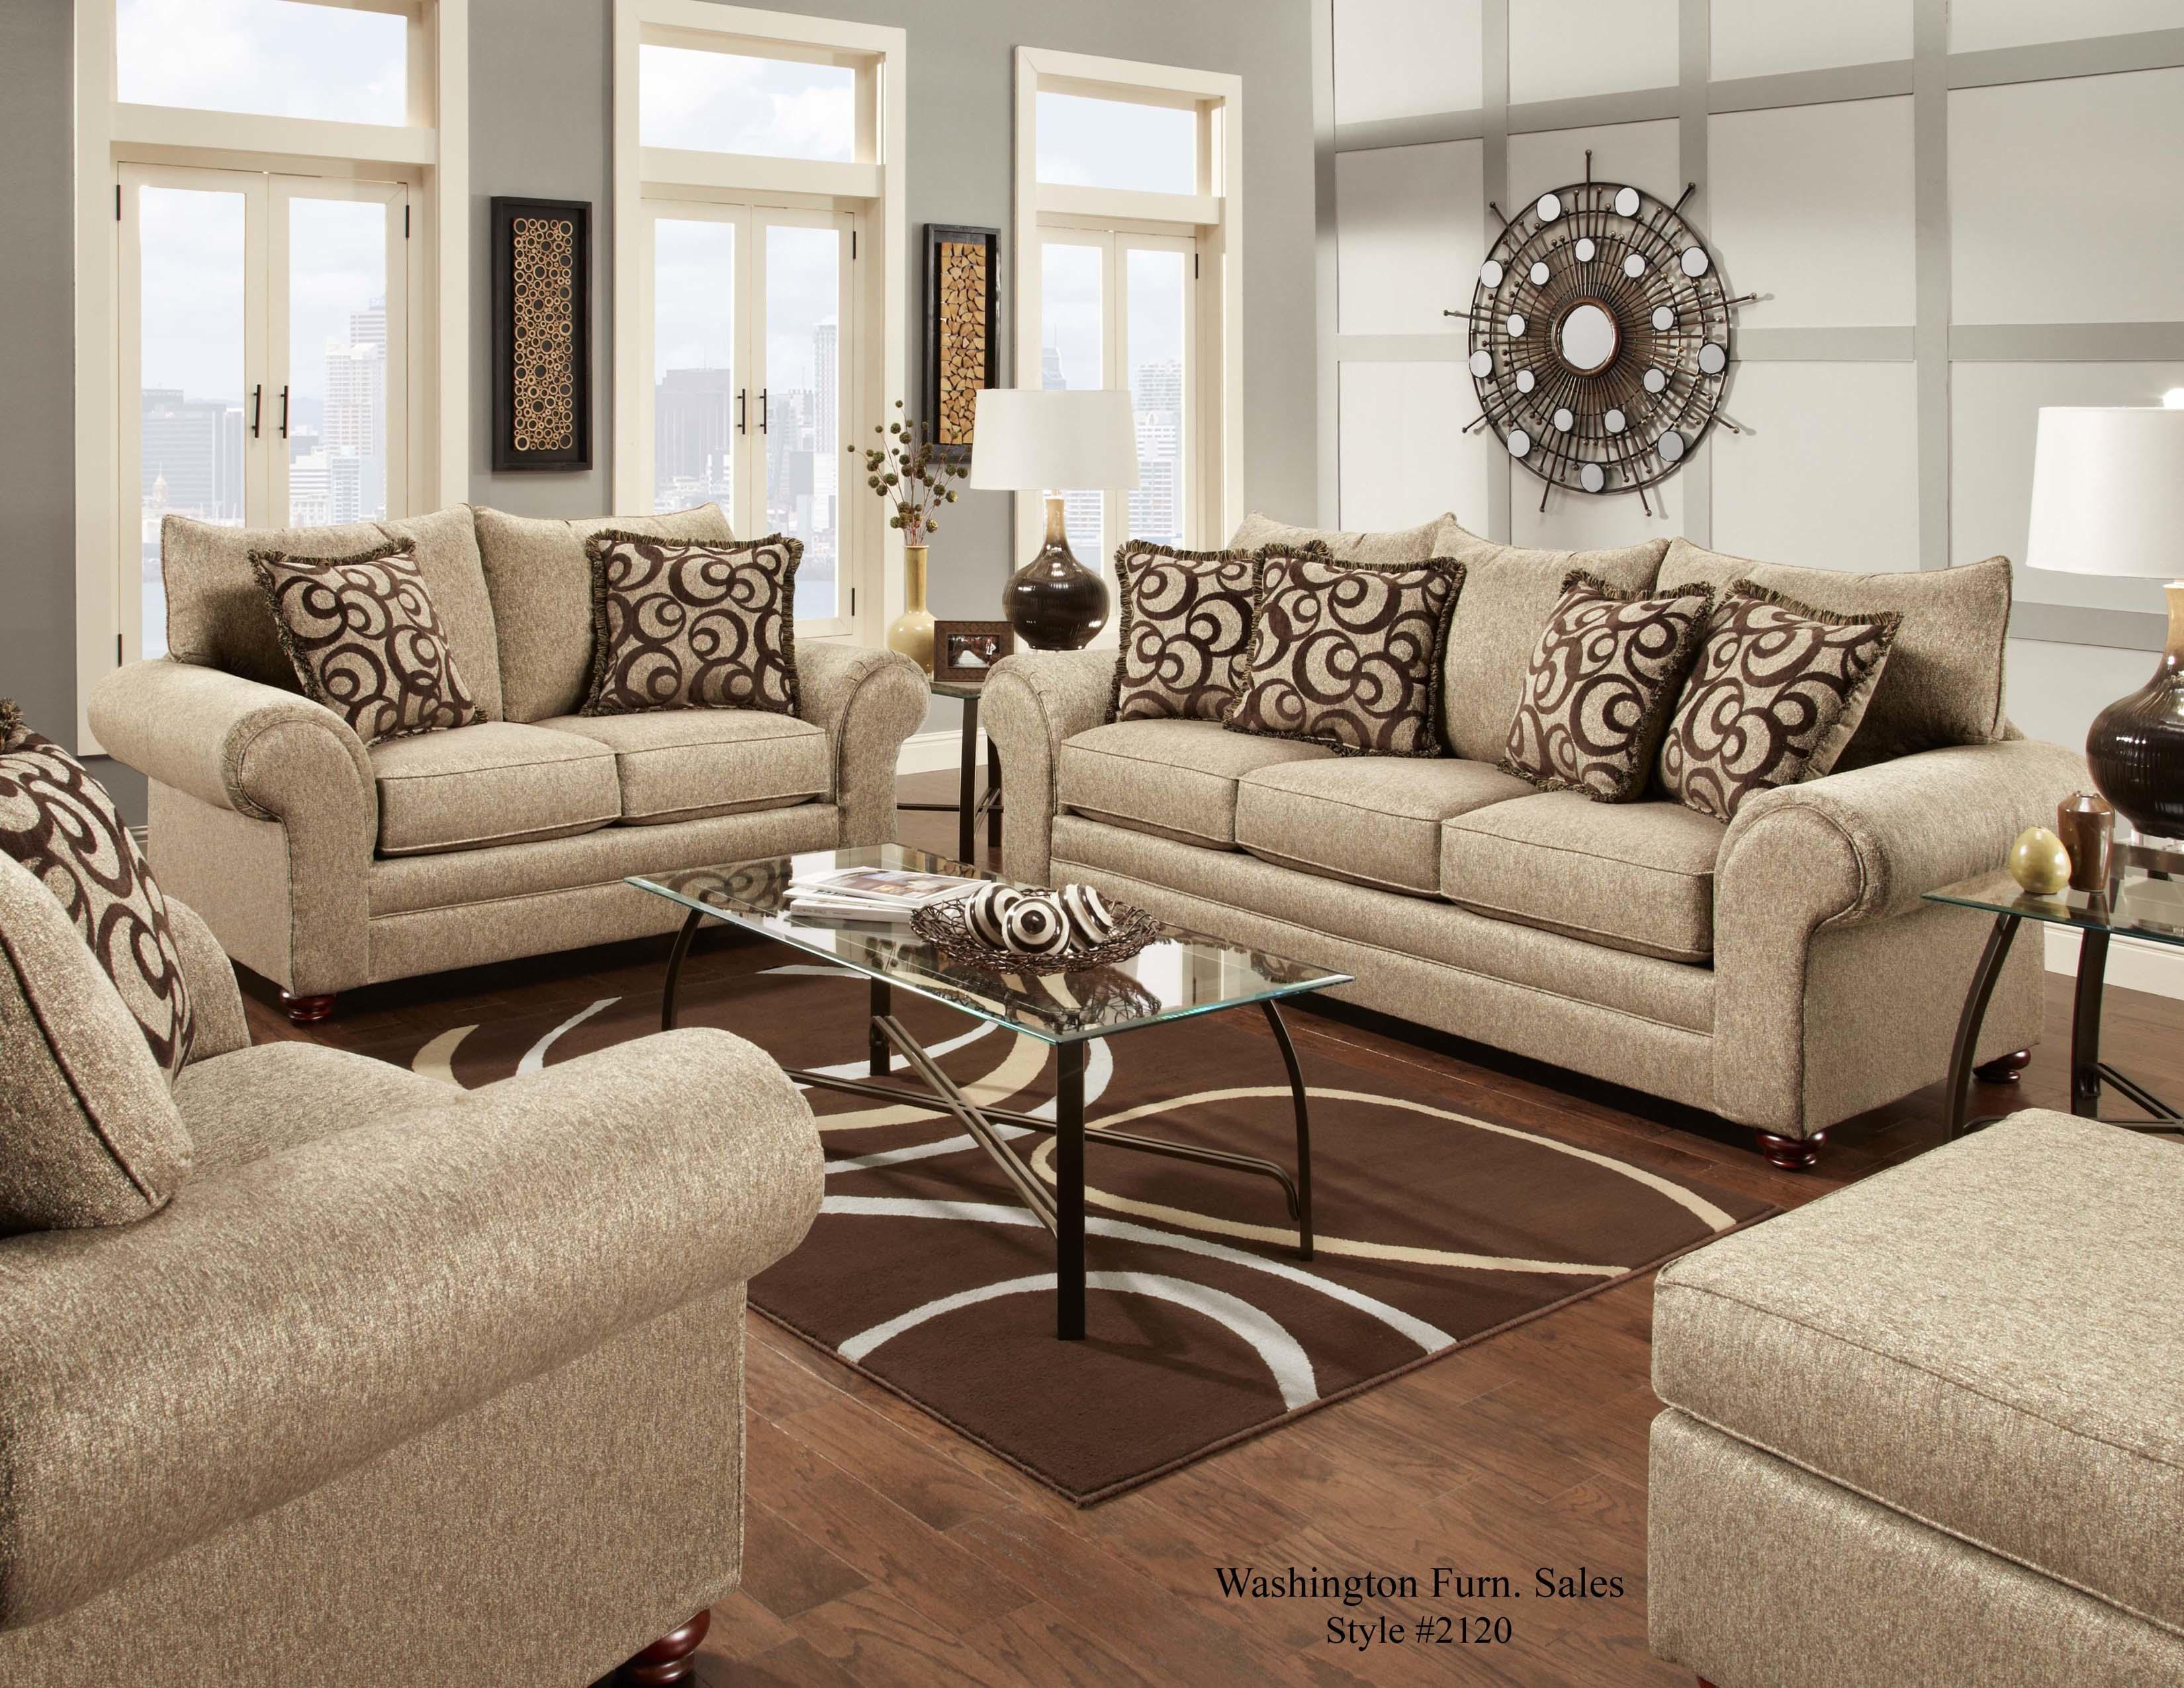 Washington Furniture 2120 Stationary Living Room Group - Item Number: 2120 Living Room Group 1